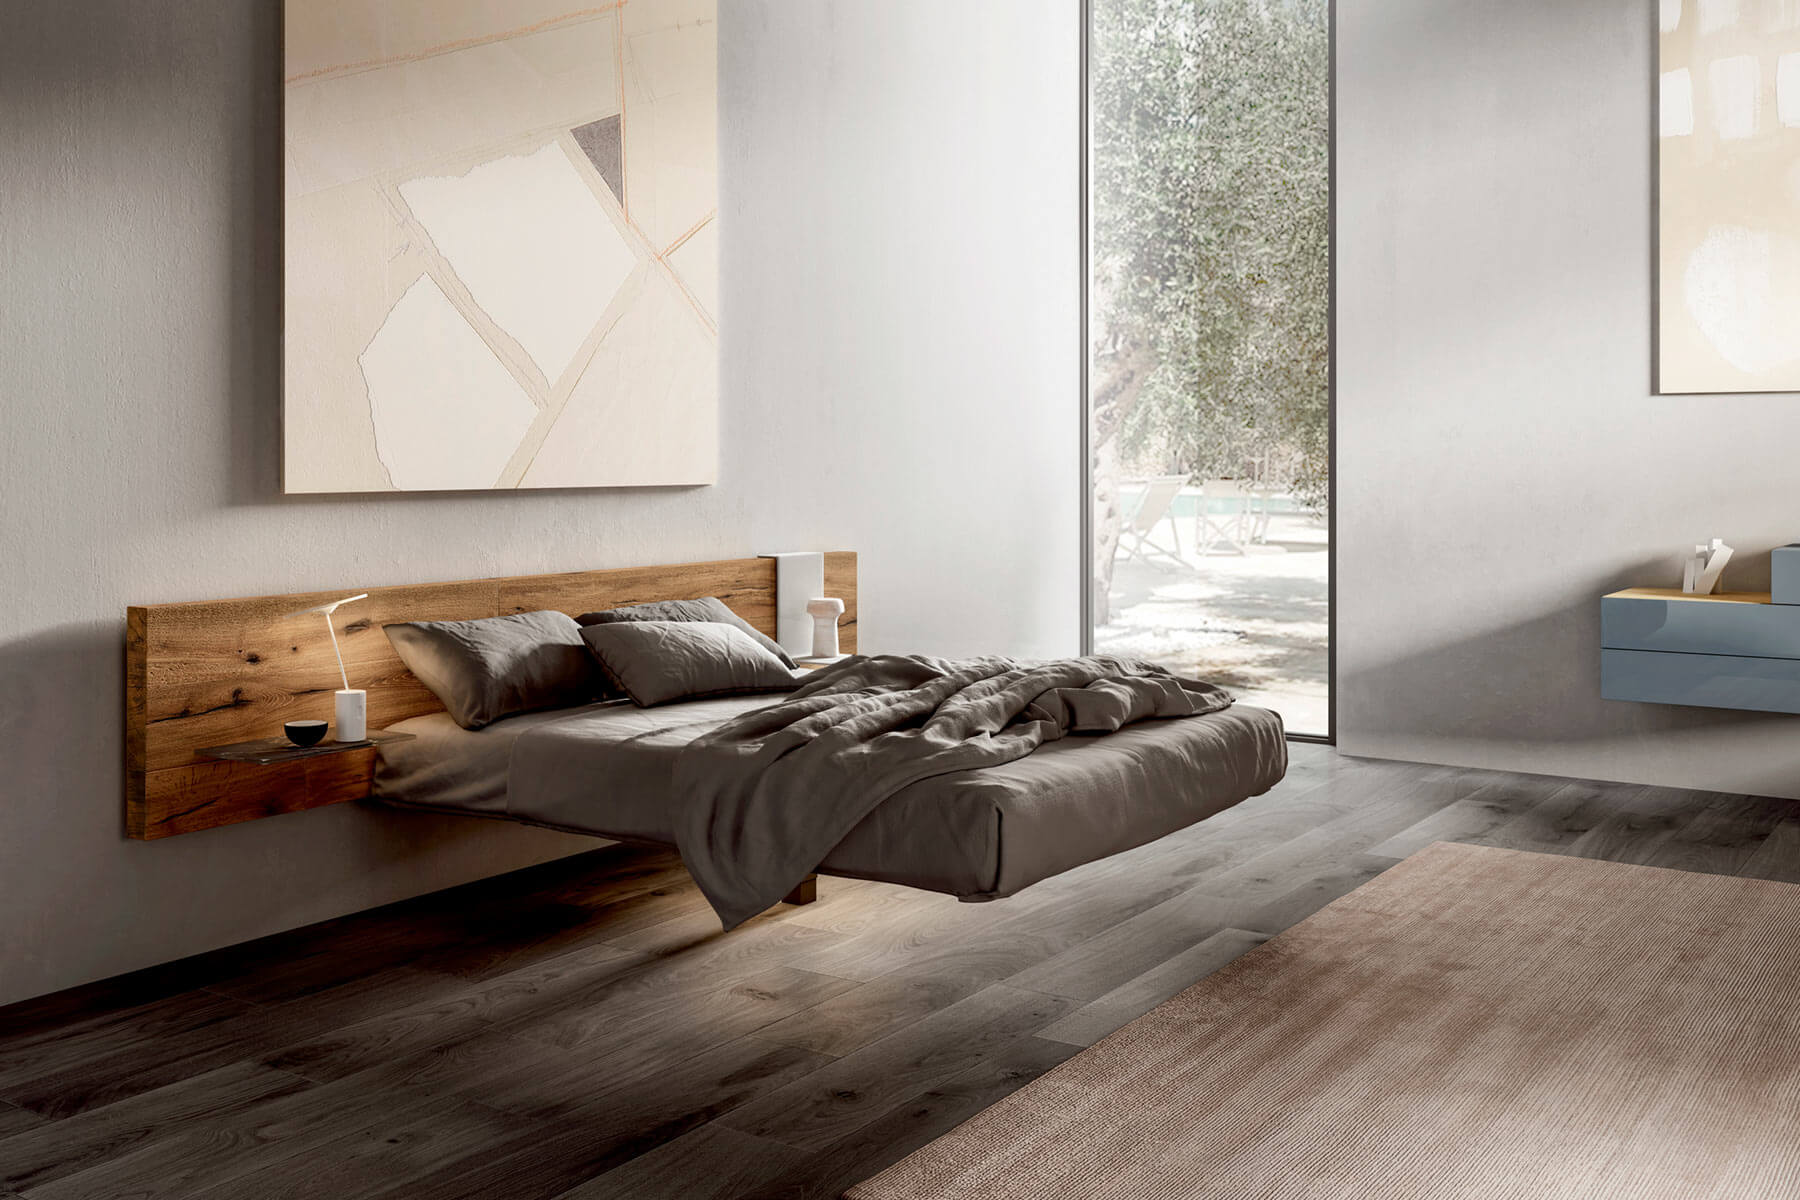 Delfanti arredamenti fluttua bed for Design lago